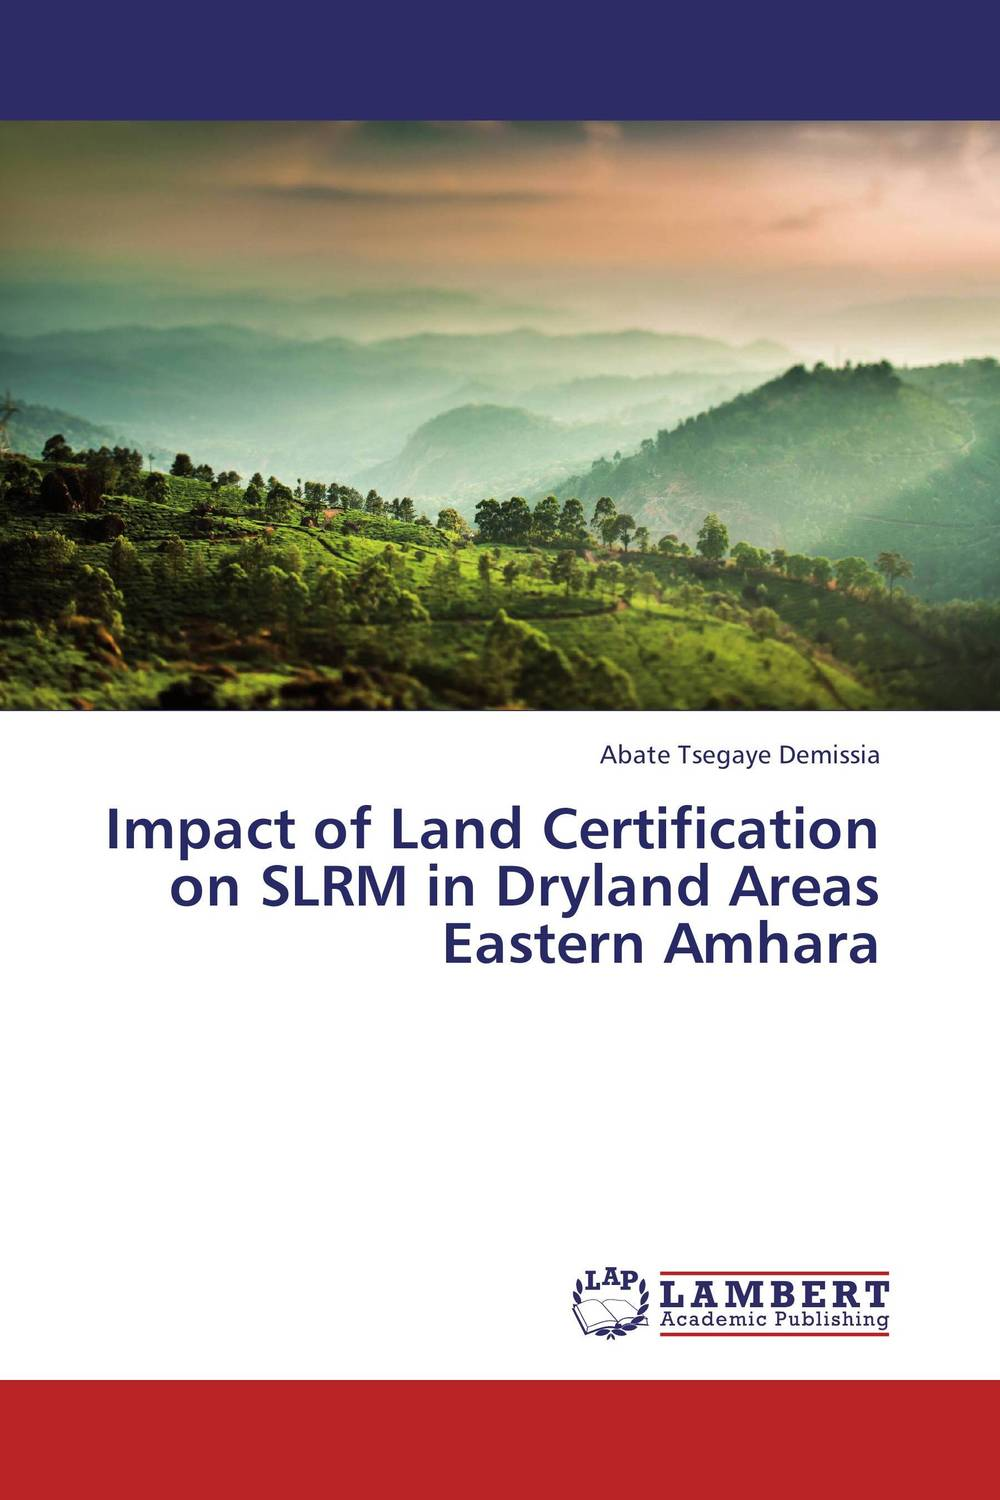 Impact of Land Certification on SLRM in Dryland Areas Eastern Amhara evaluation of land suitability for rice production in amhara region